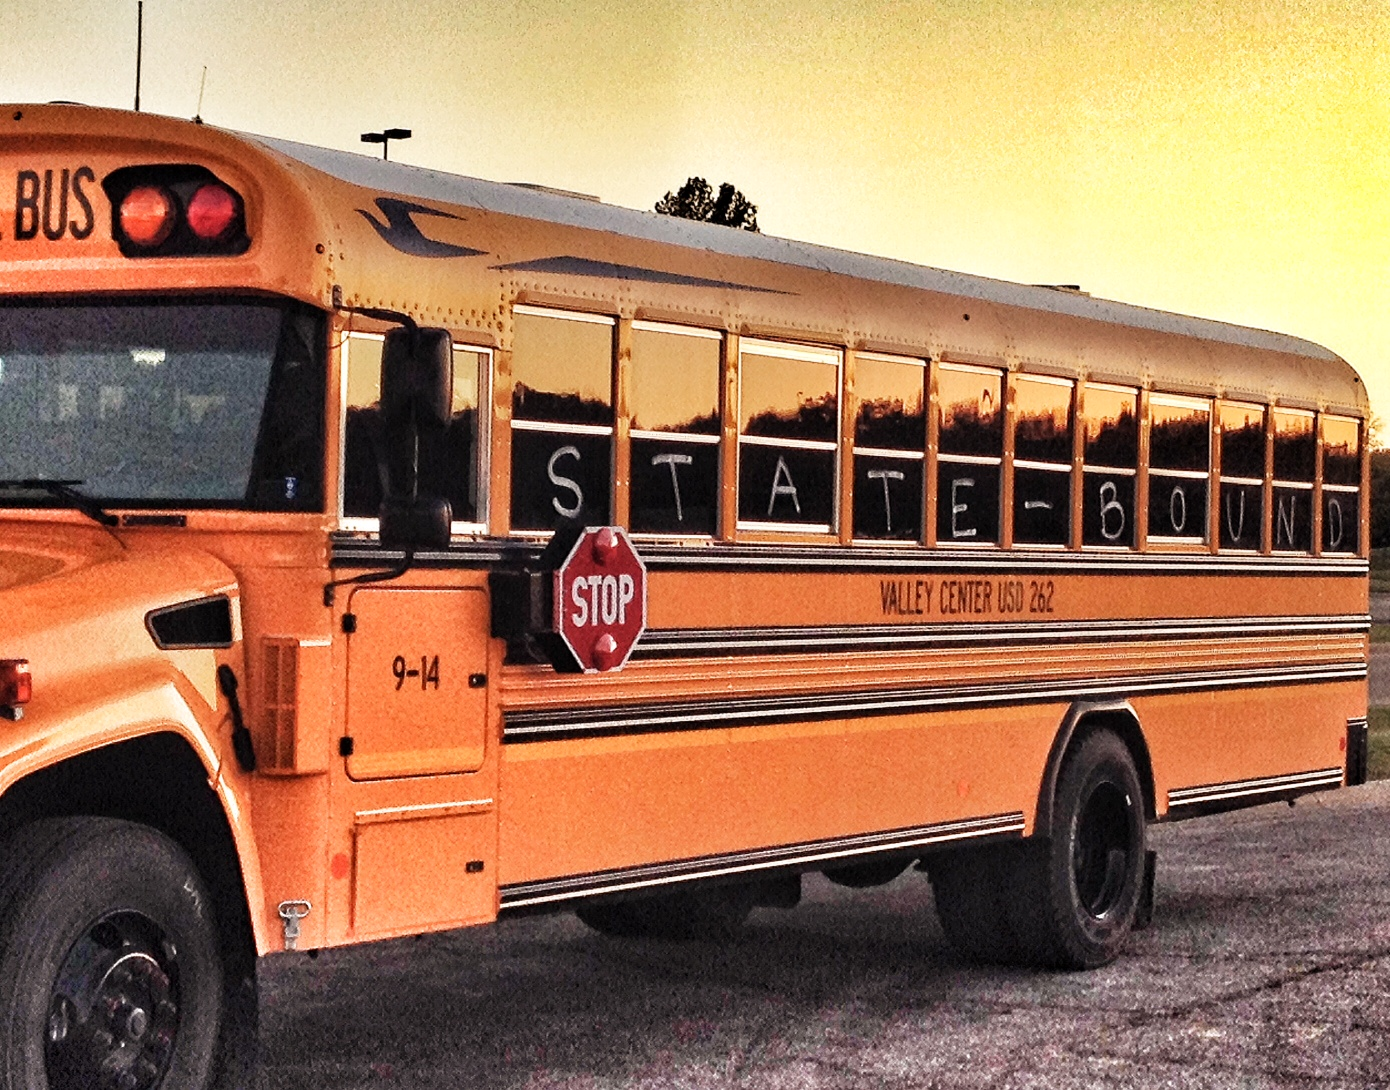 Typical Kansas school bus (Photo by J. Schafer)